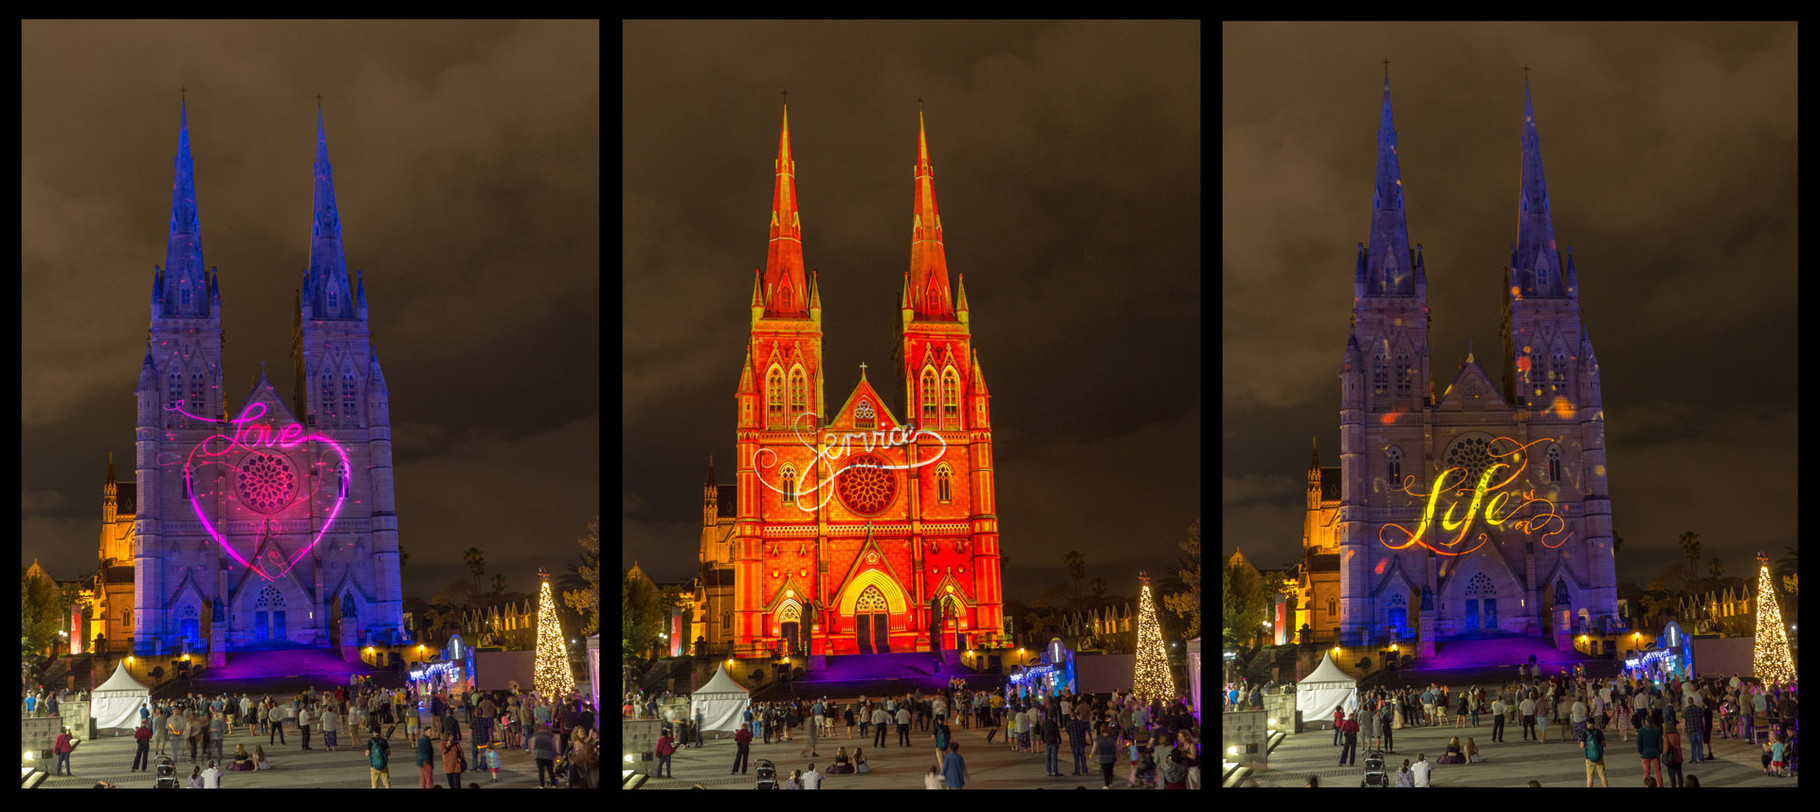 Lights of Christmas, St. Mary Church, Sydney